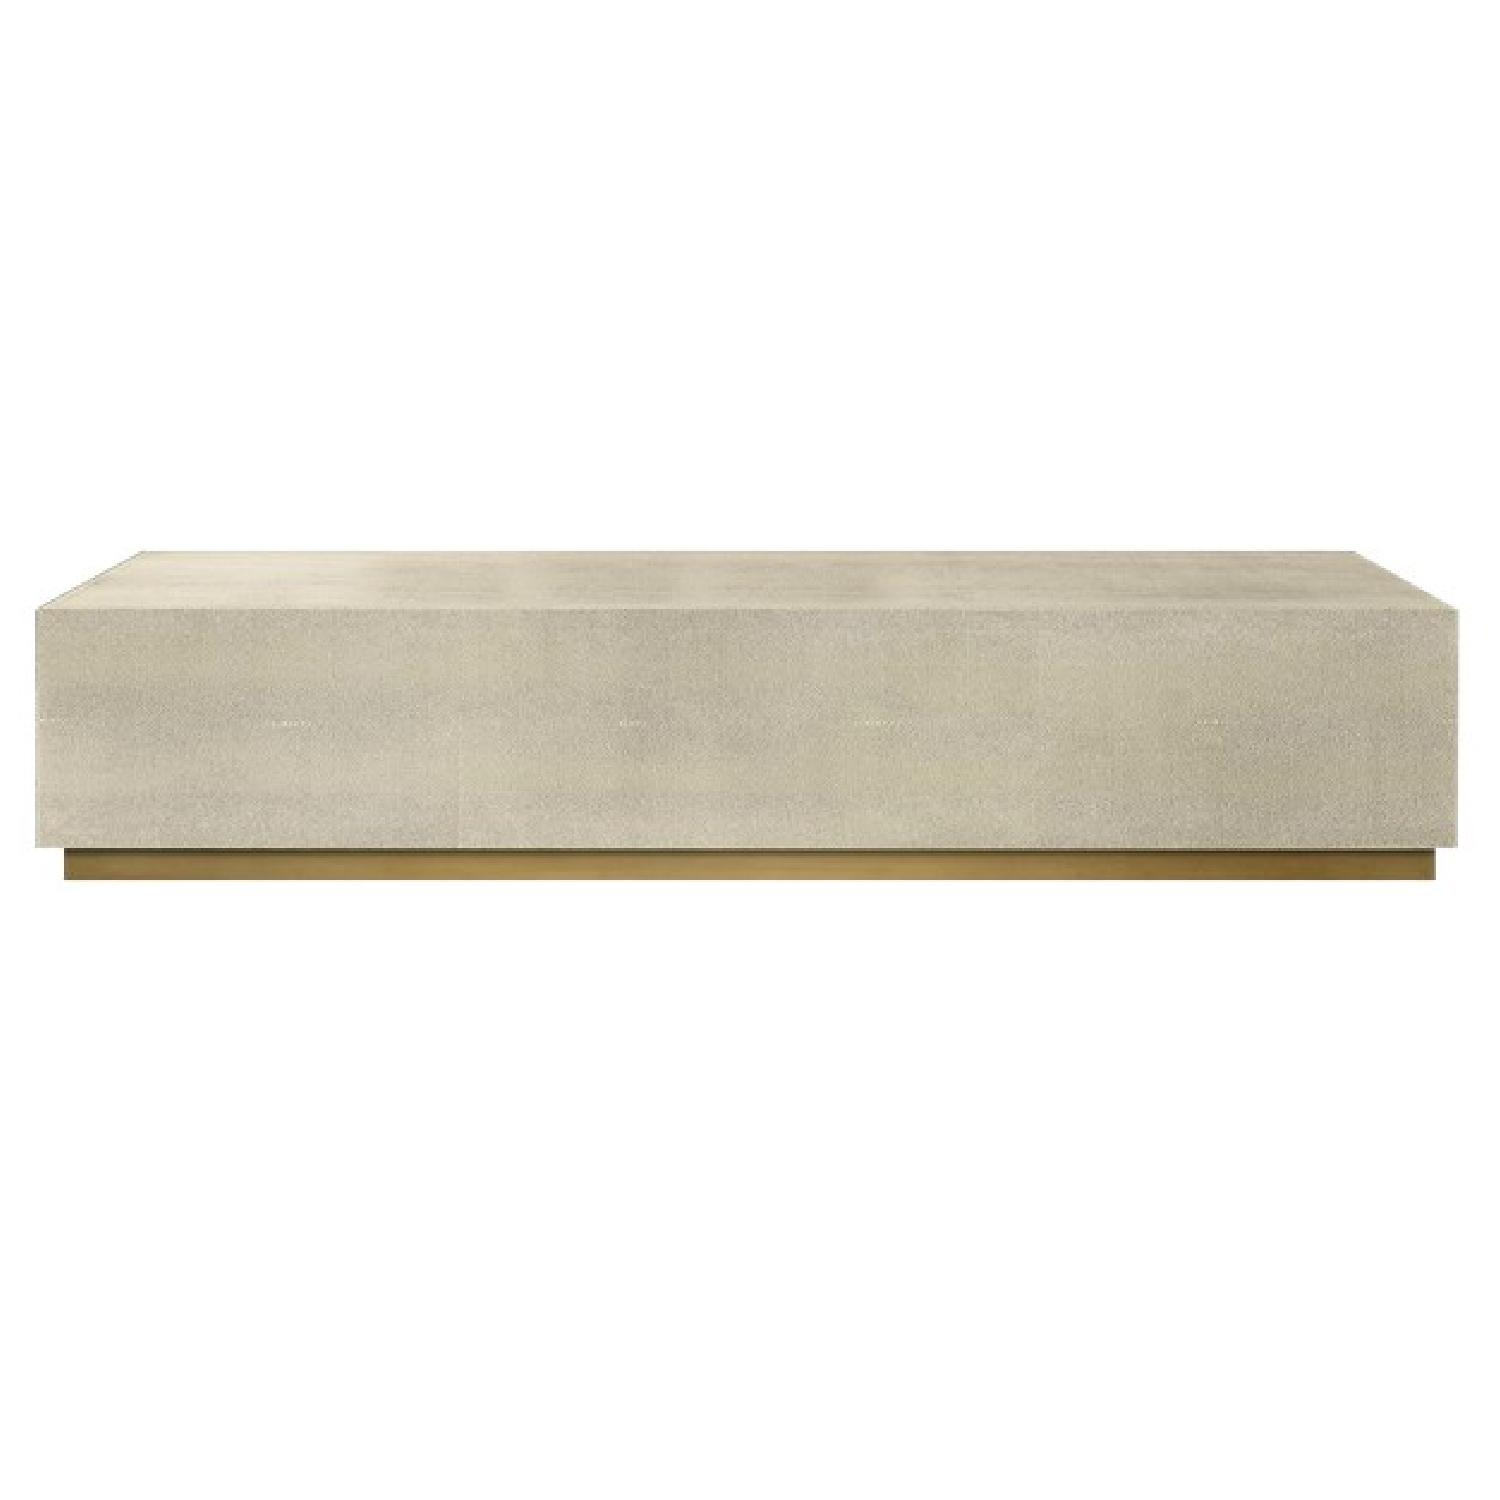 Restoration Hardware Graydon Shagreen Plinth Coffee Table - image-0